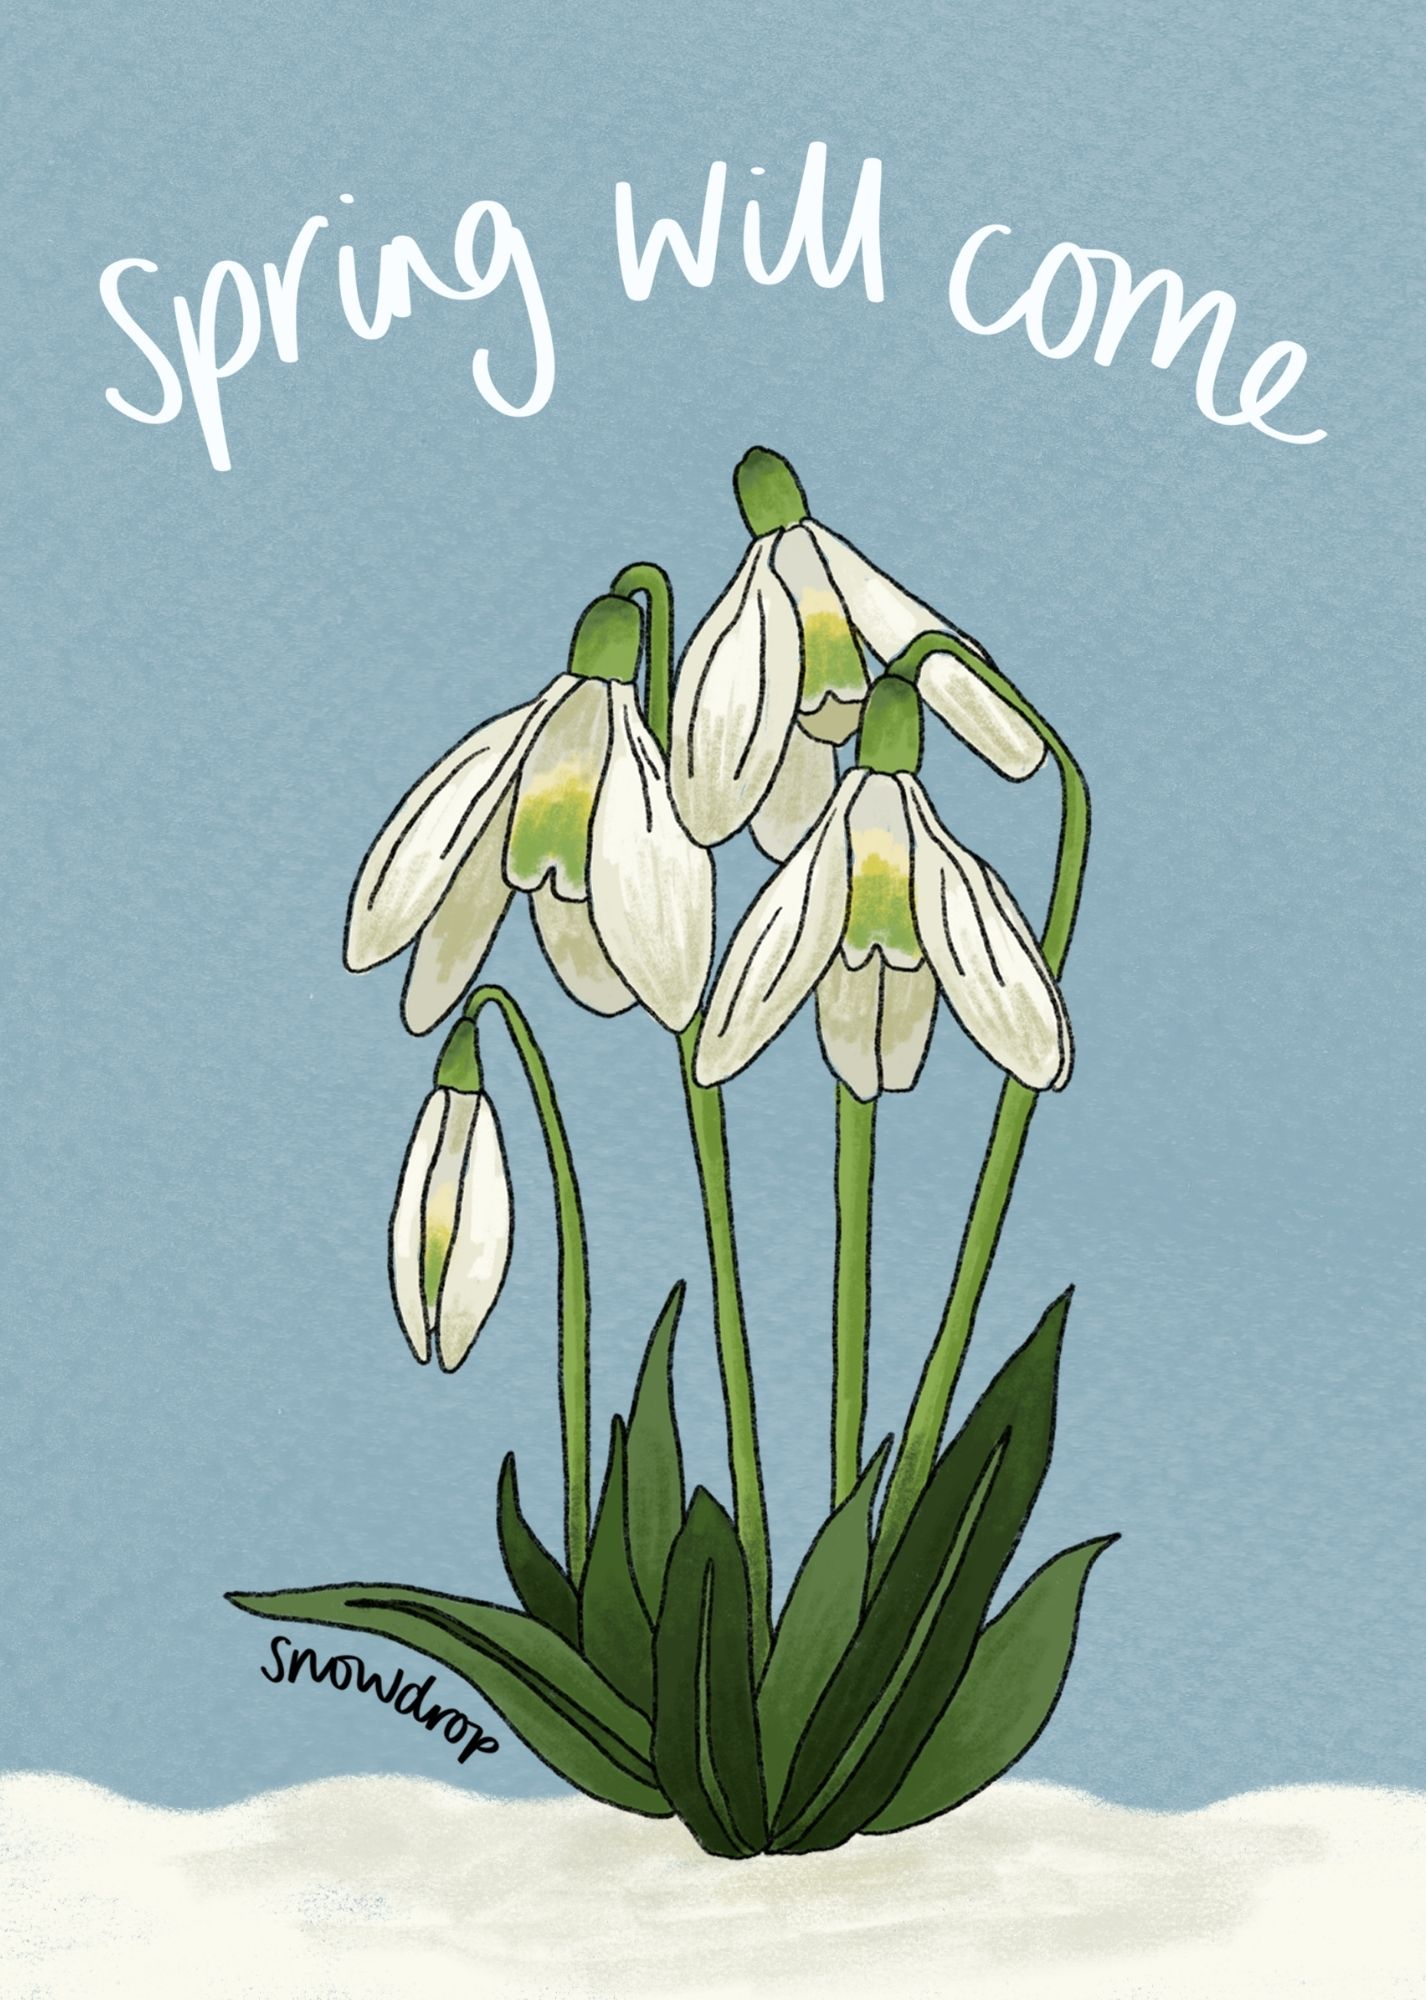 Spring will come